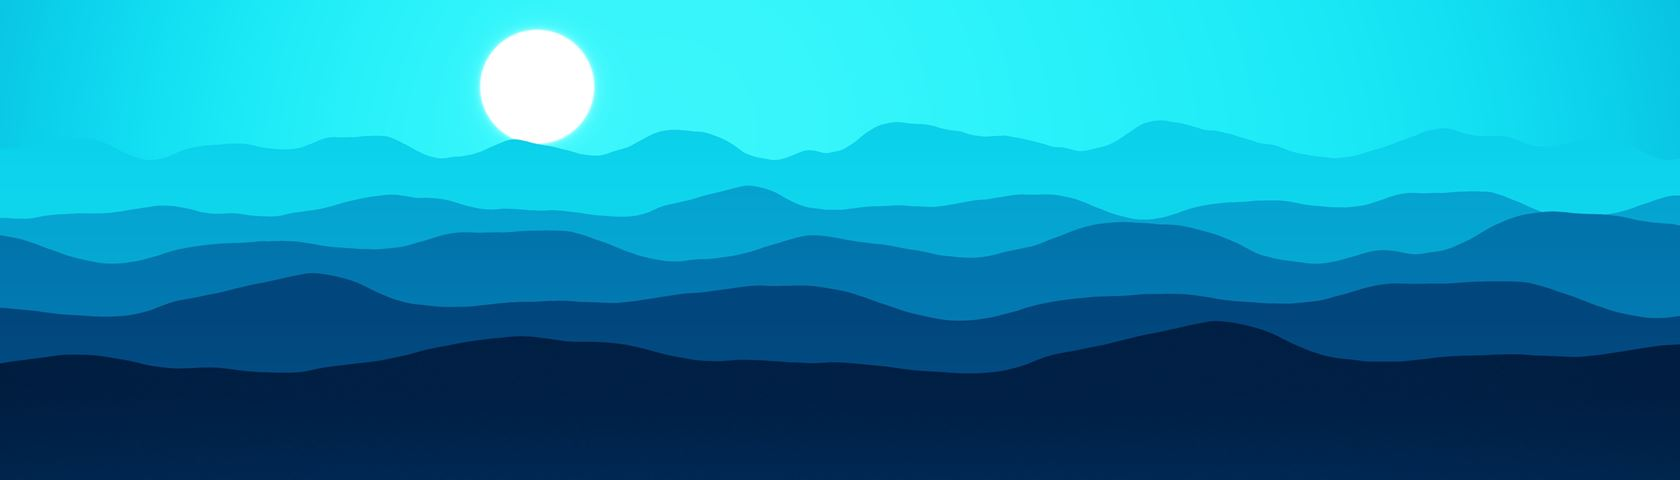 Mountains Bluish Cyan Images Wallpaperfusion By Binary